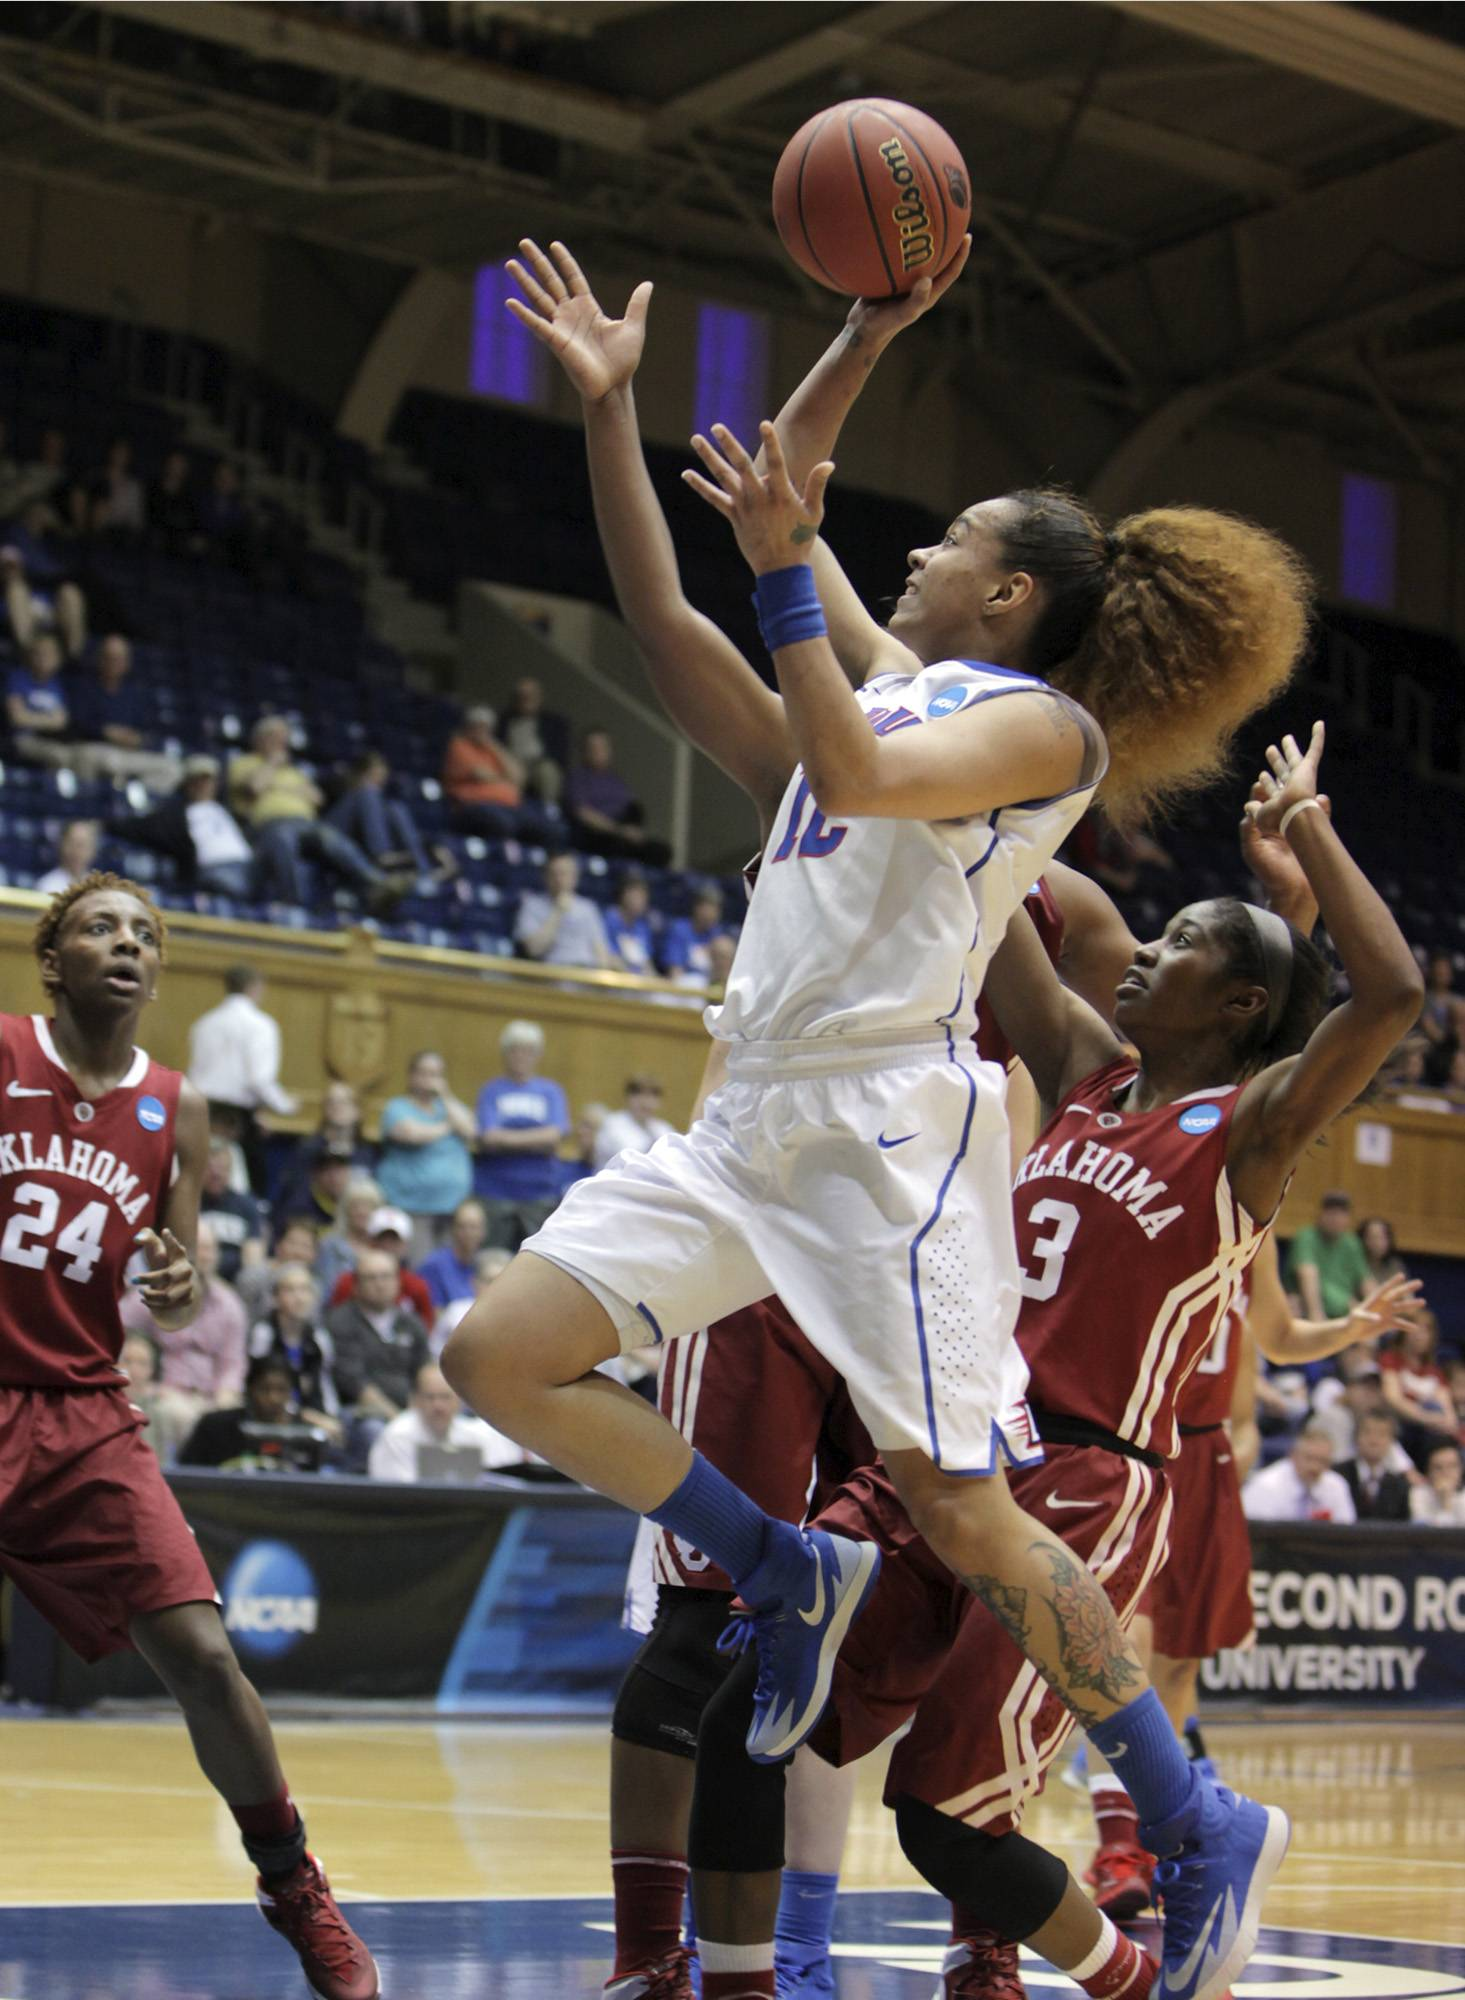 DePaul women earn 104-100 win over Oklahoma